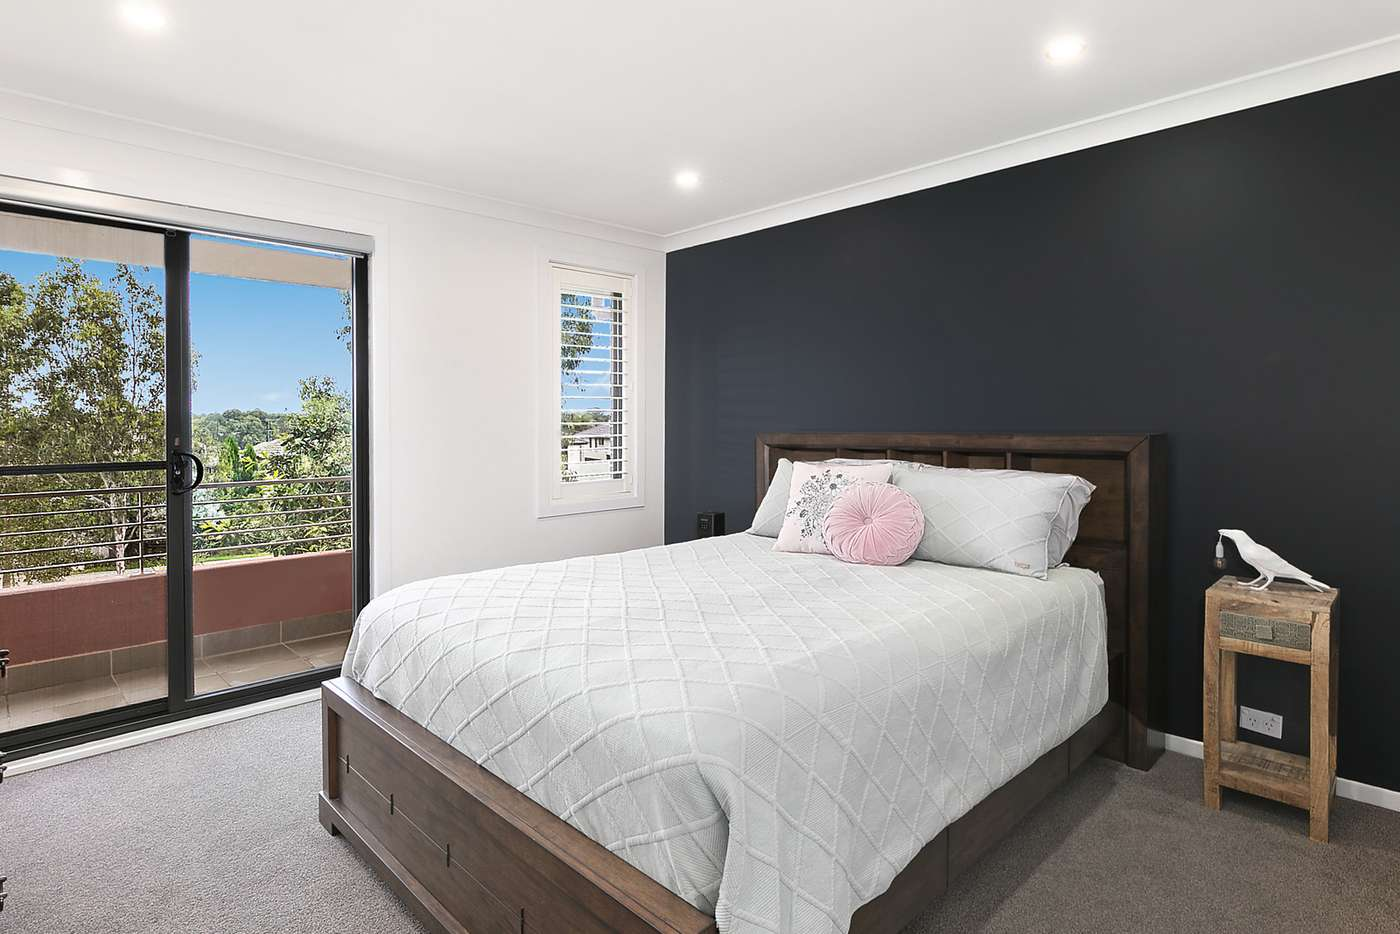 Sixth view of Homely house listing, 4 Pollifrone Street, Kellyville Ridge NSW 2155